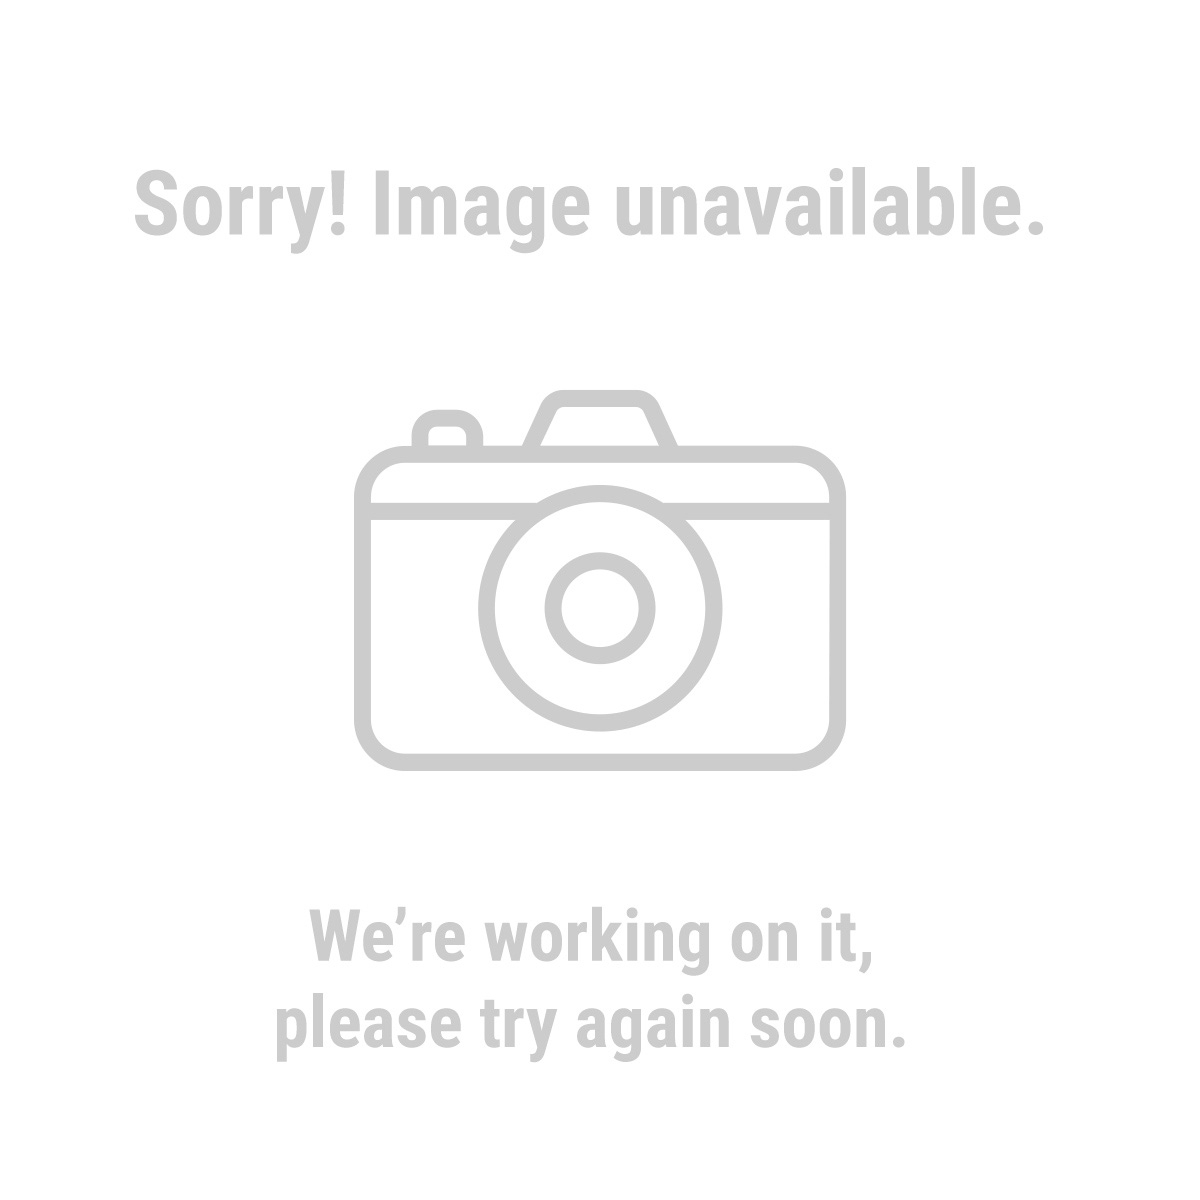 Benchtop band saw for 10 table saw harbor freight